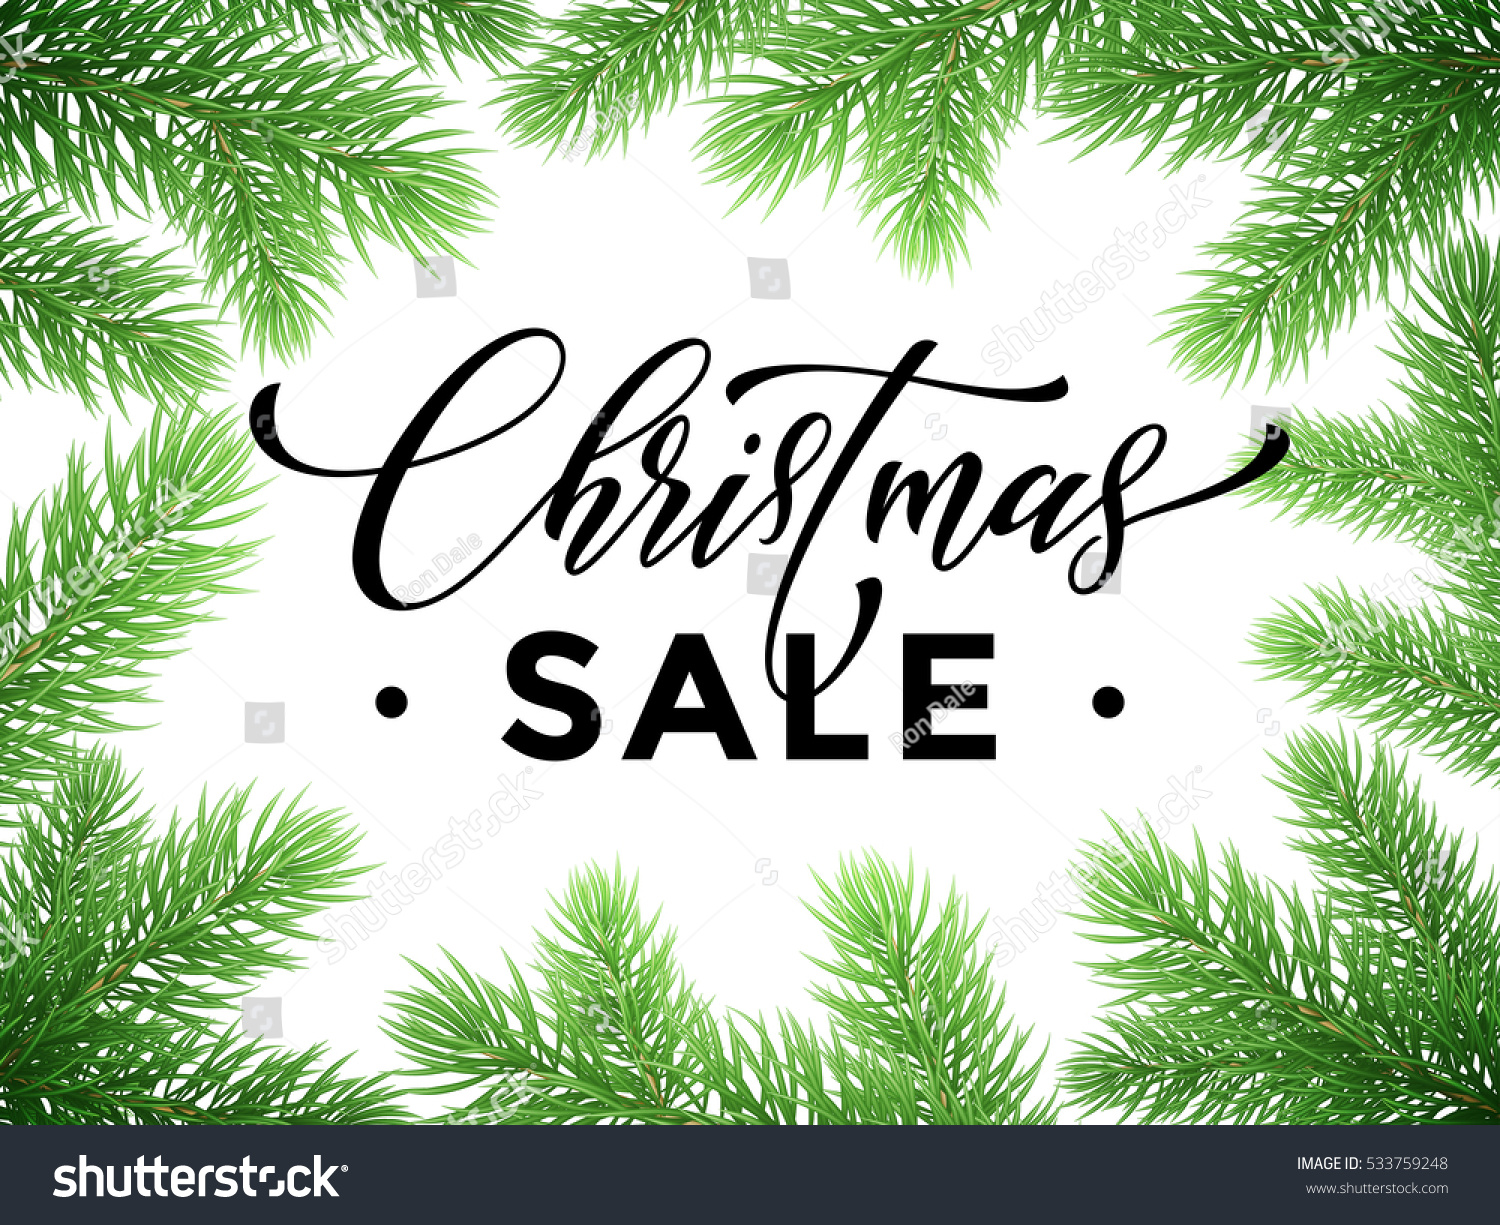 promotion discount sale poster christmas tree stock vector 533759248